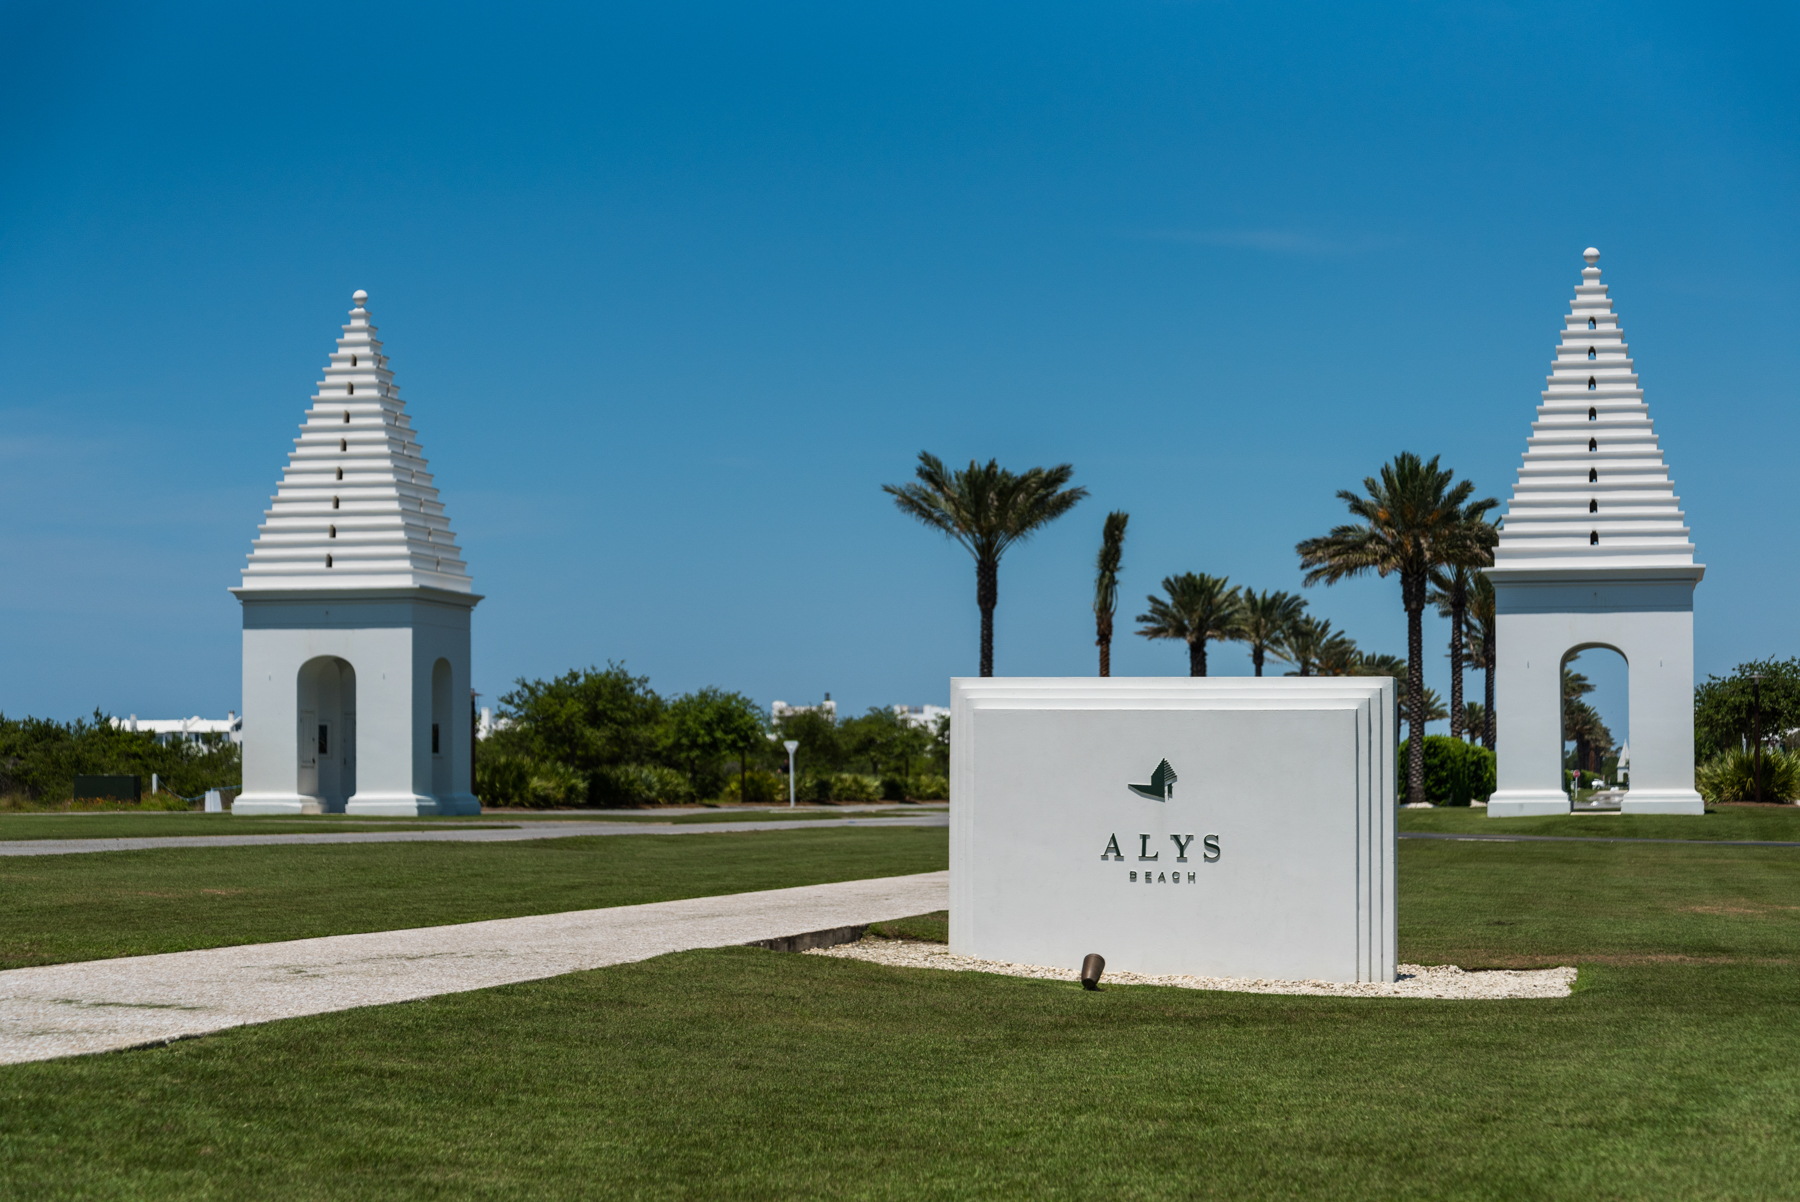 Alys_Beach_20160523_012-Edit.jpg